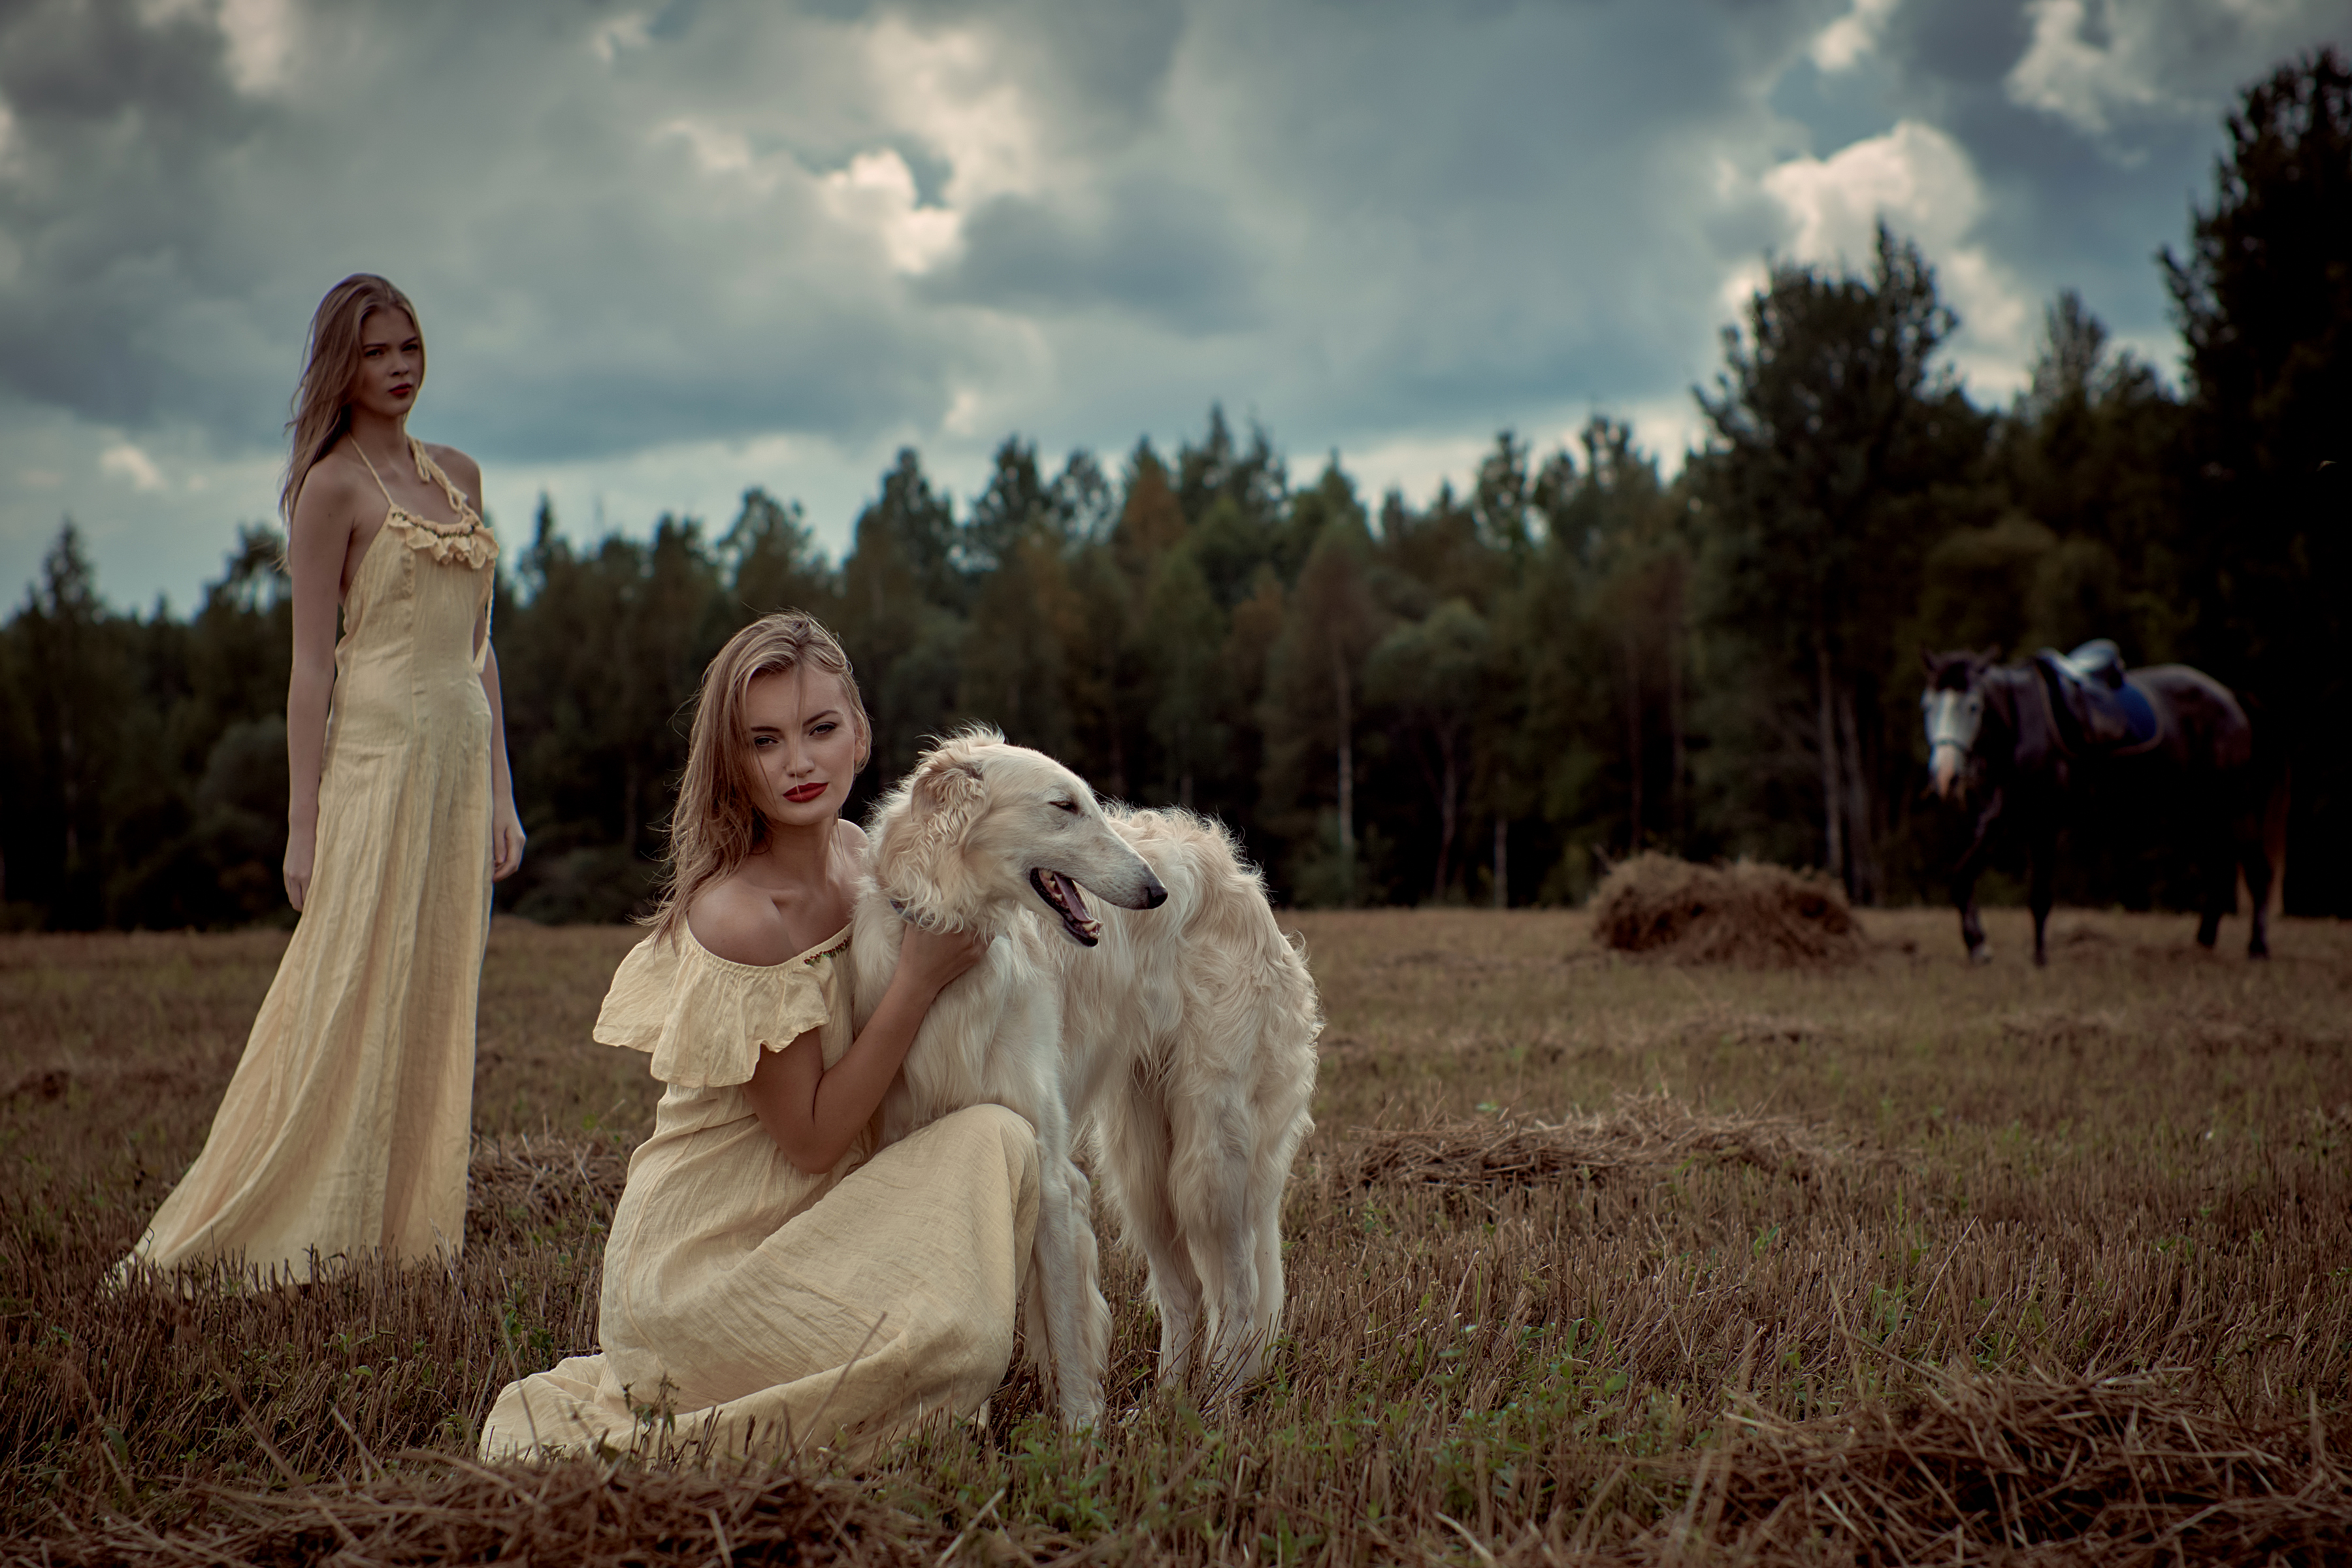 Picture Sighthound dog Russian hunting sighthound 2 young woman Animals frock 3600x2400 Dogs Two Girls female animal gown Dress